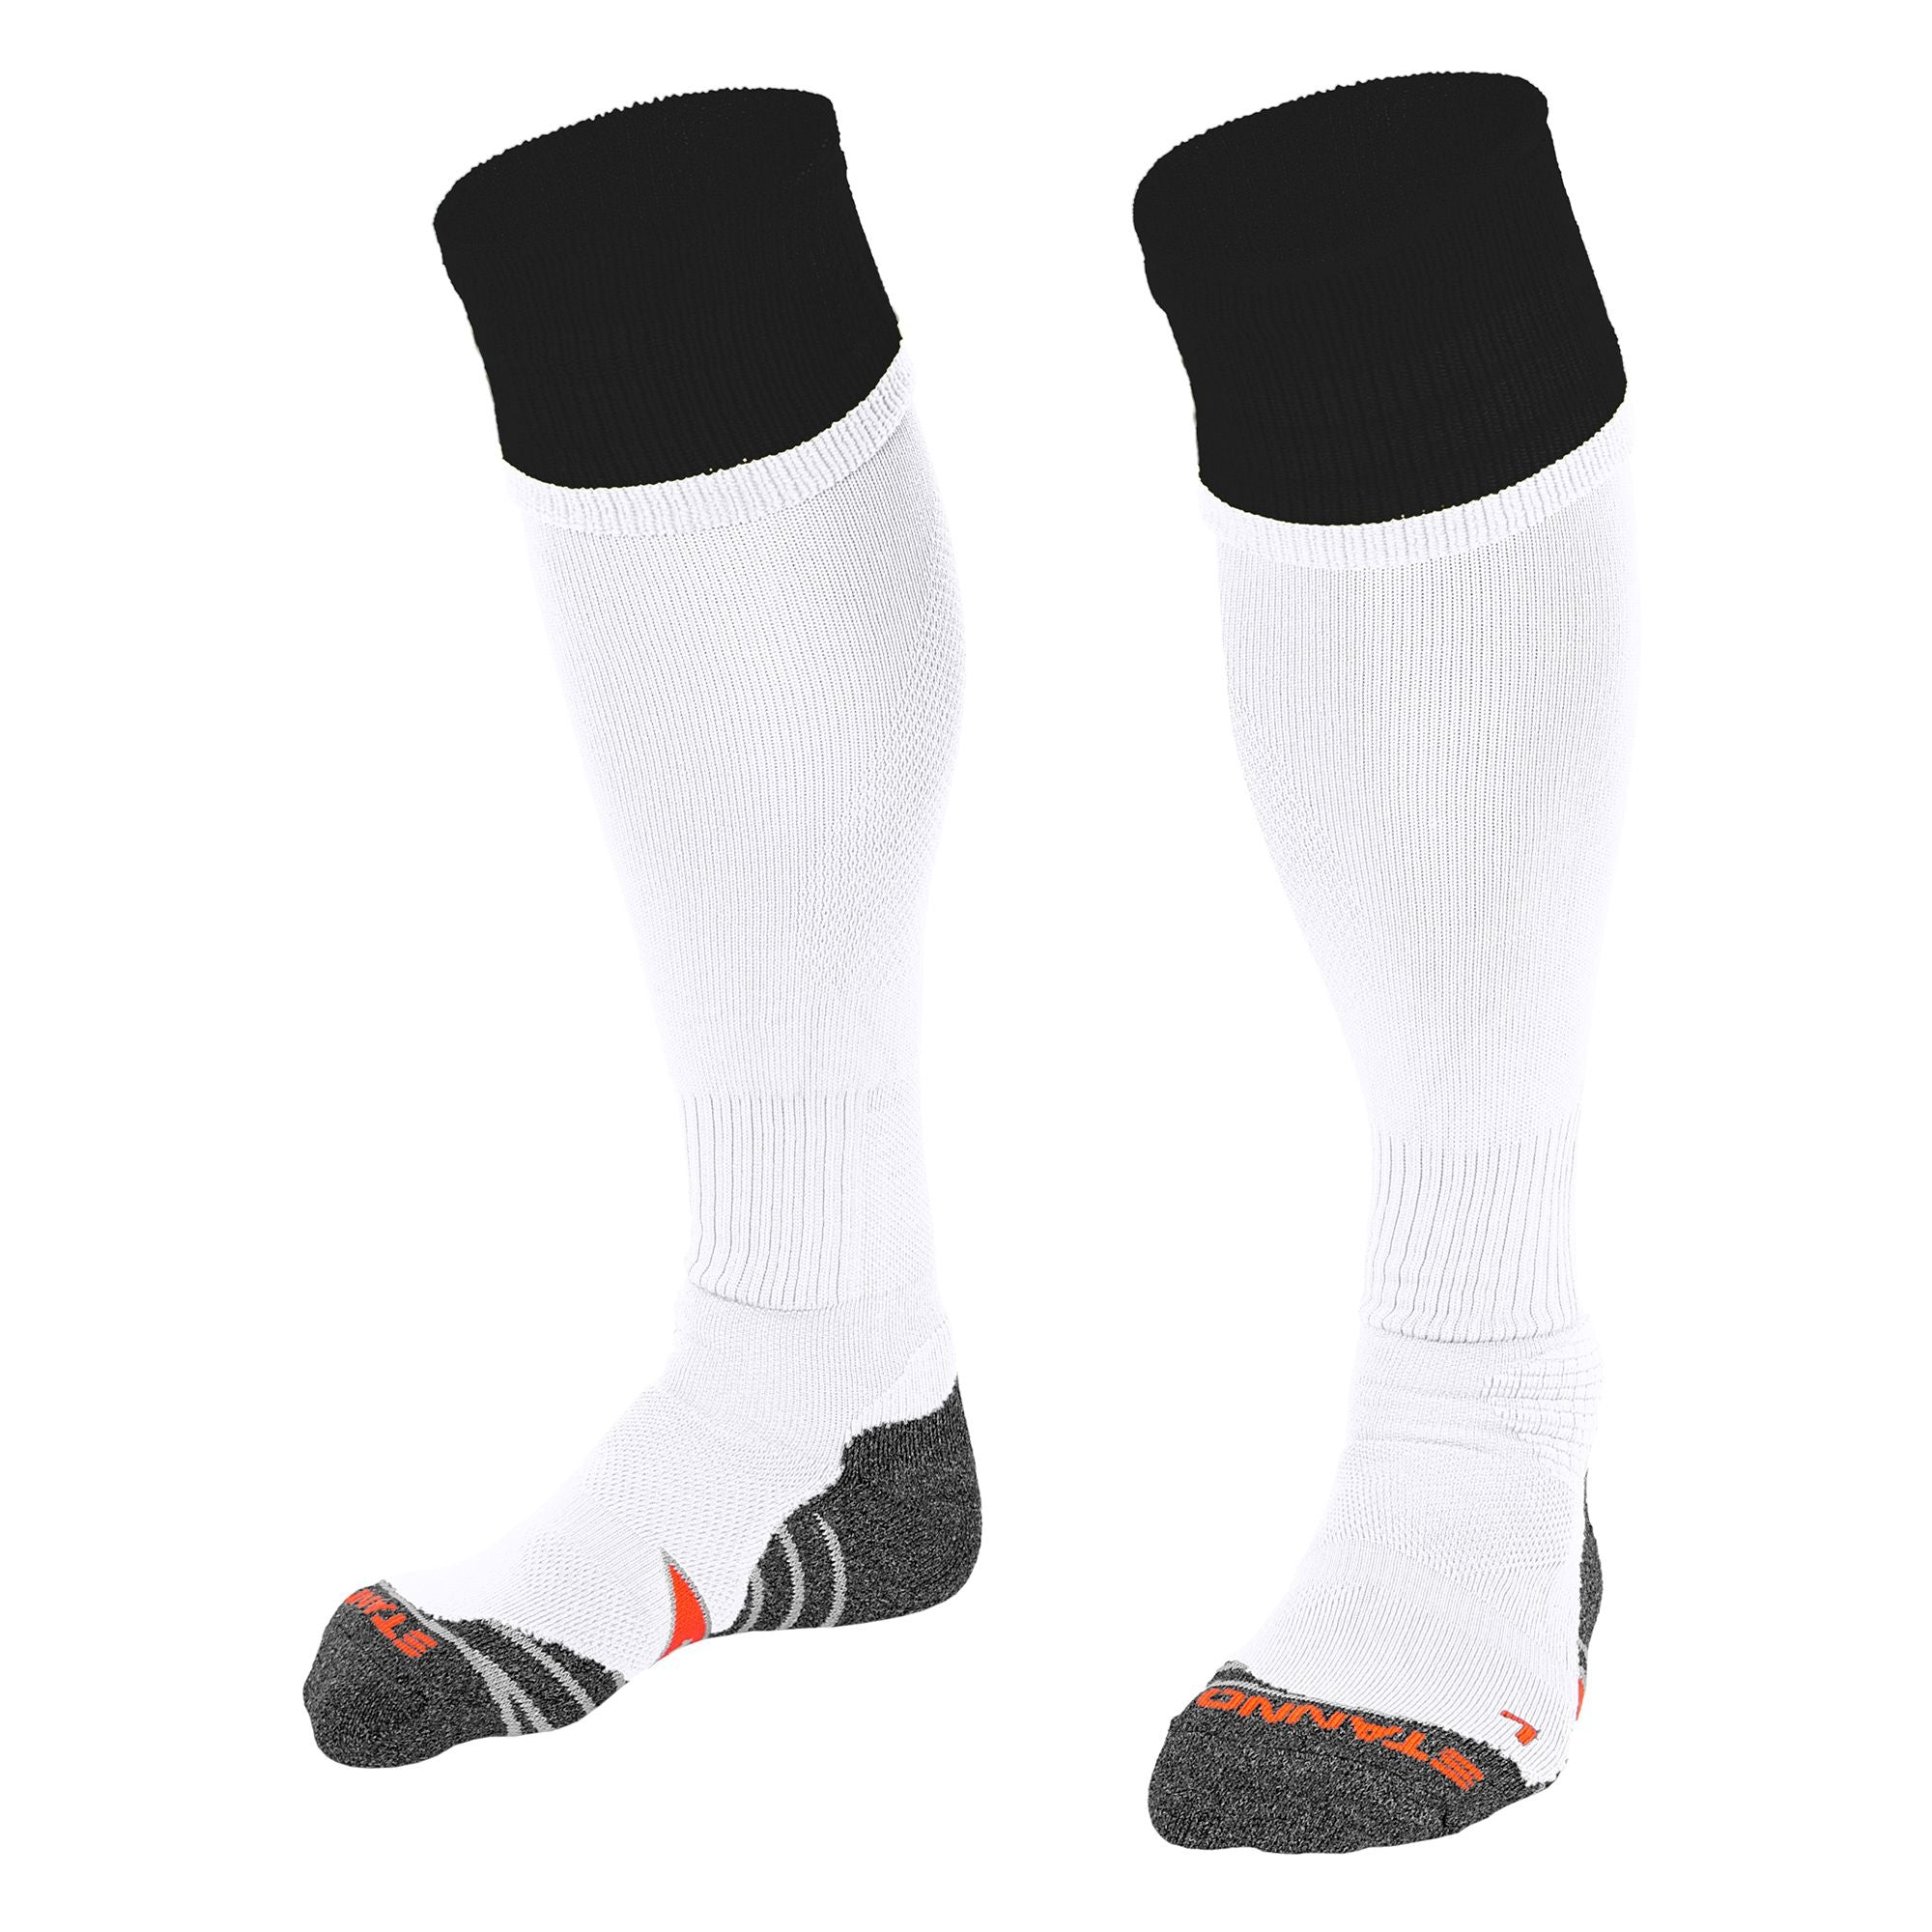 Stanno Combi Sock in white with black contrast tops